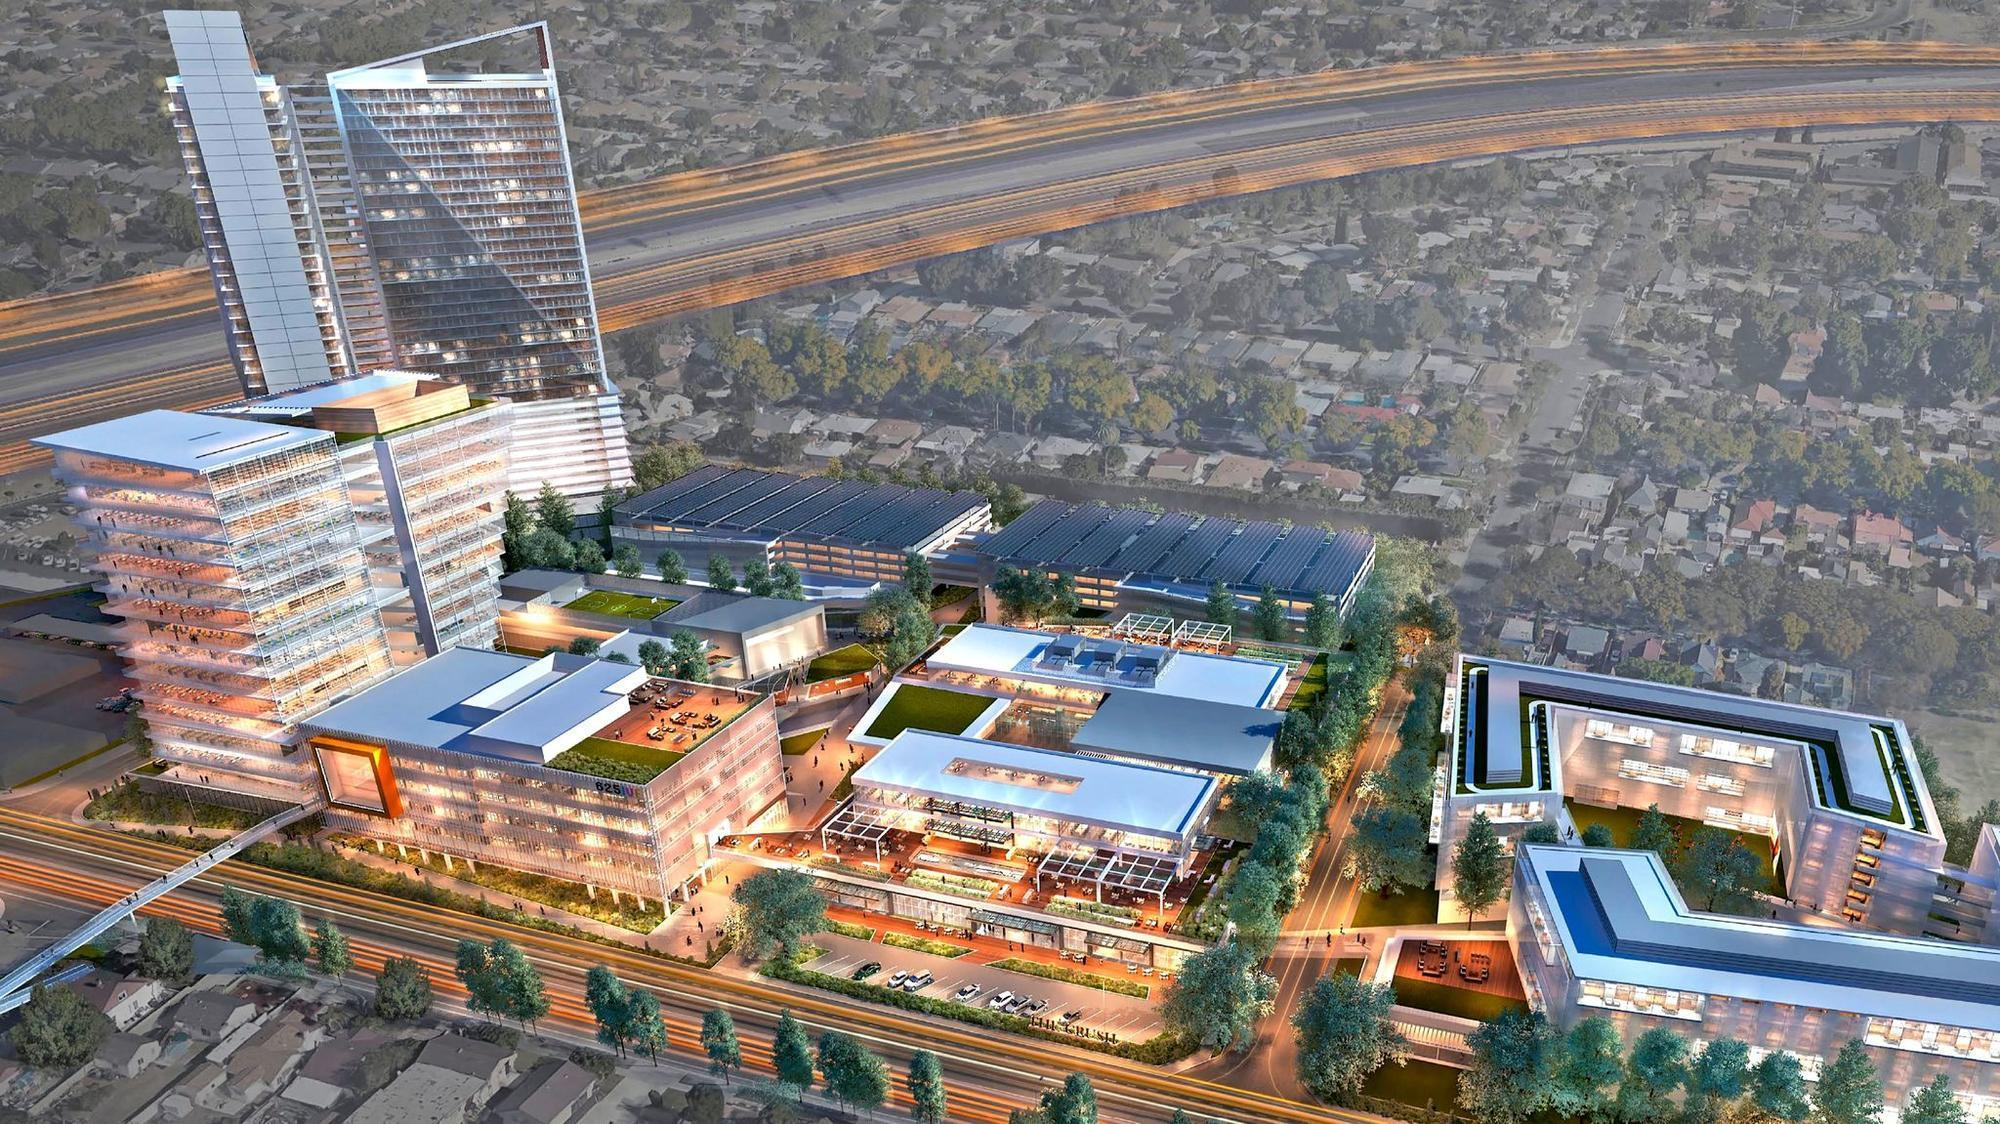 Southern california cities to submit bids for amazon 39 s new - Maison d architecte orange county californie ...